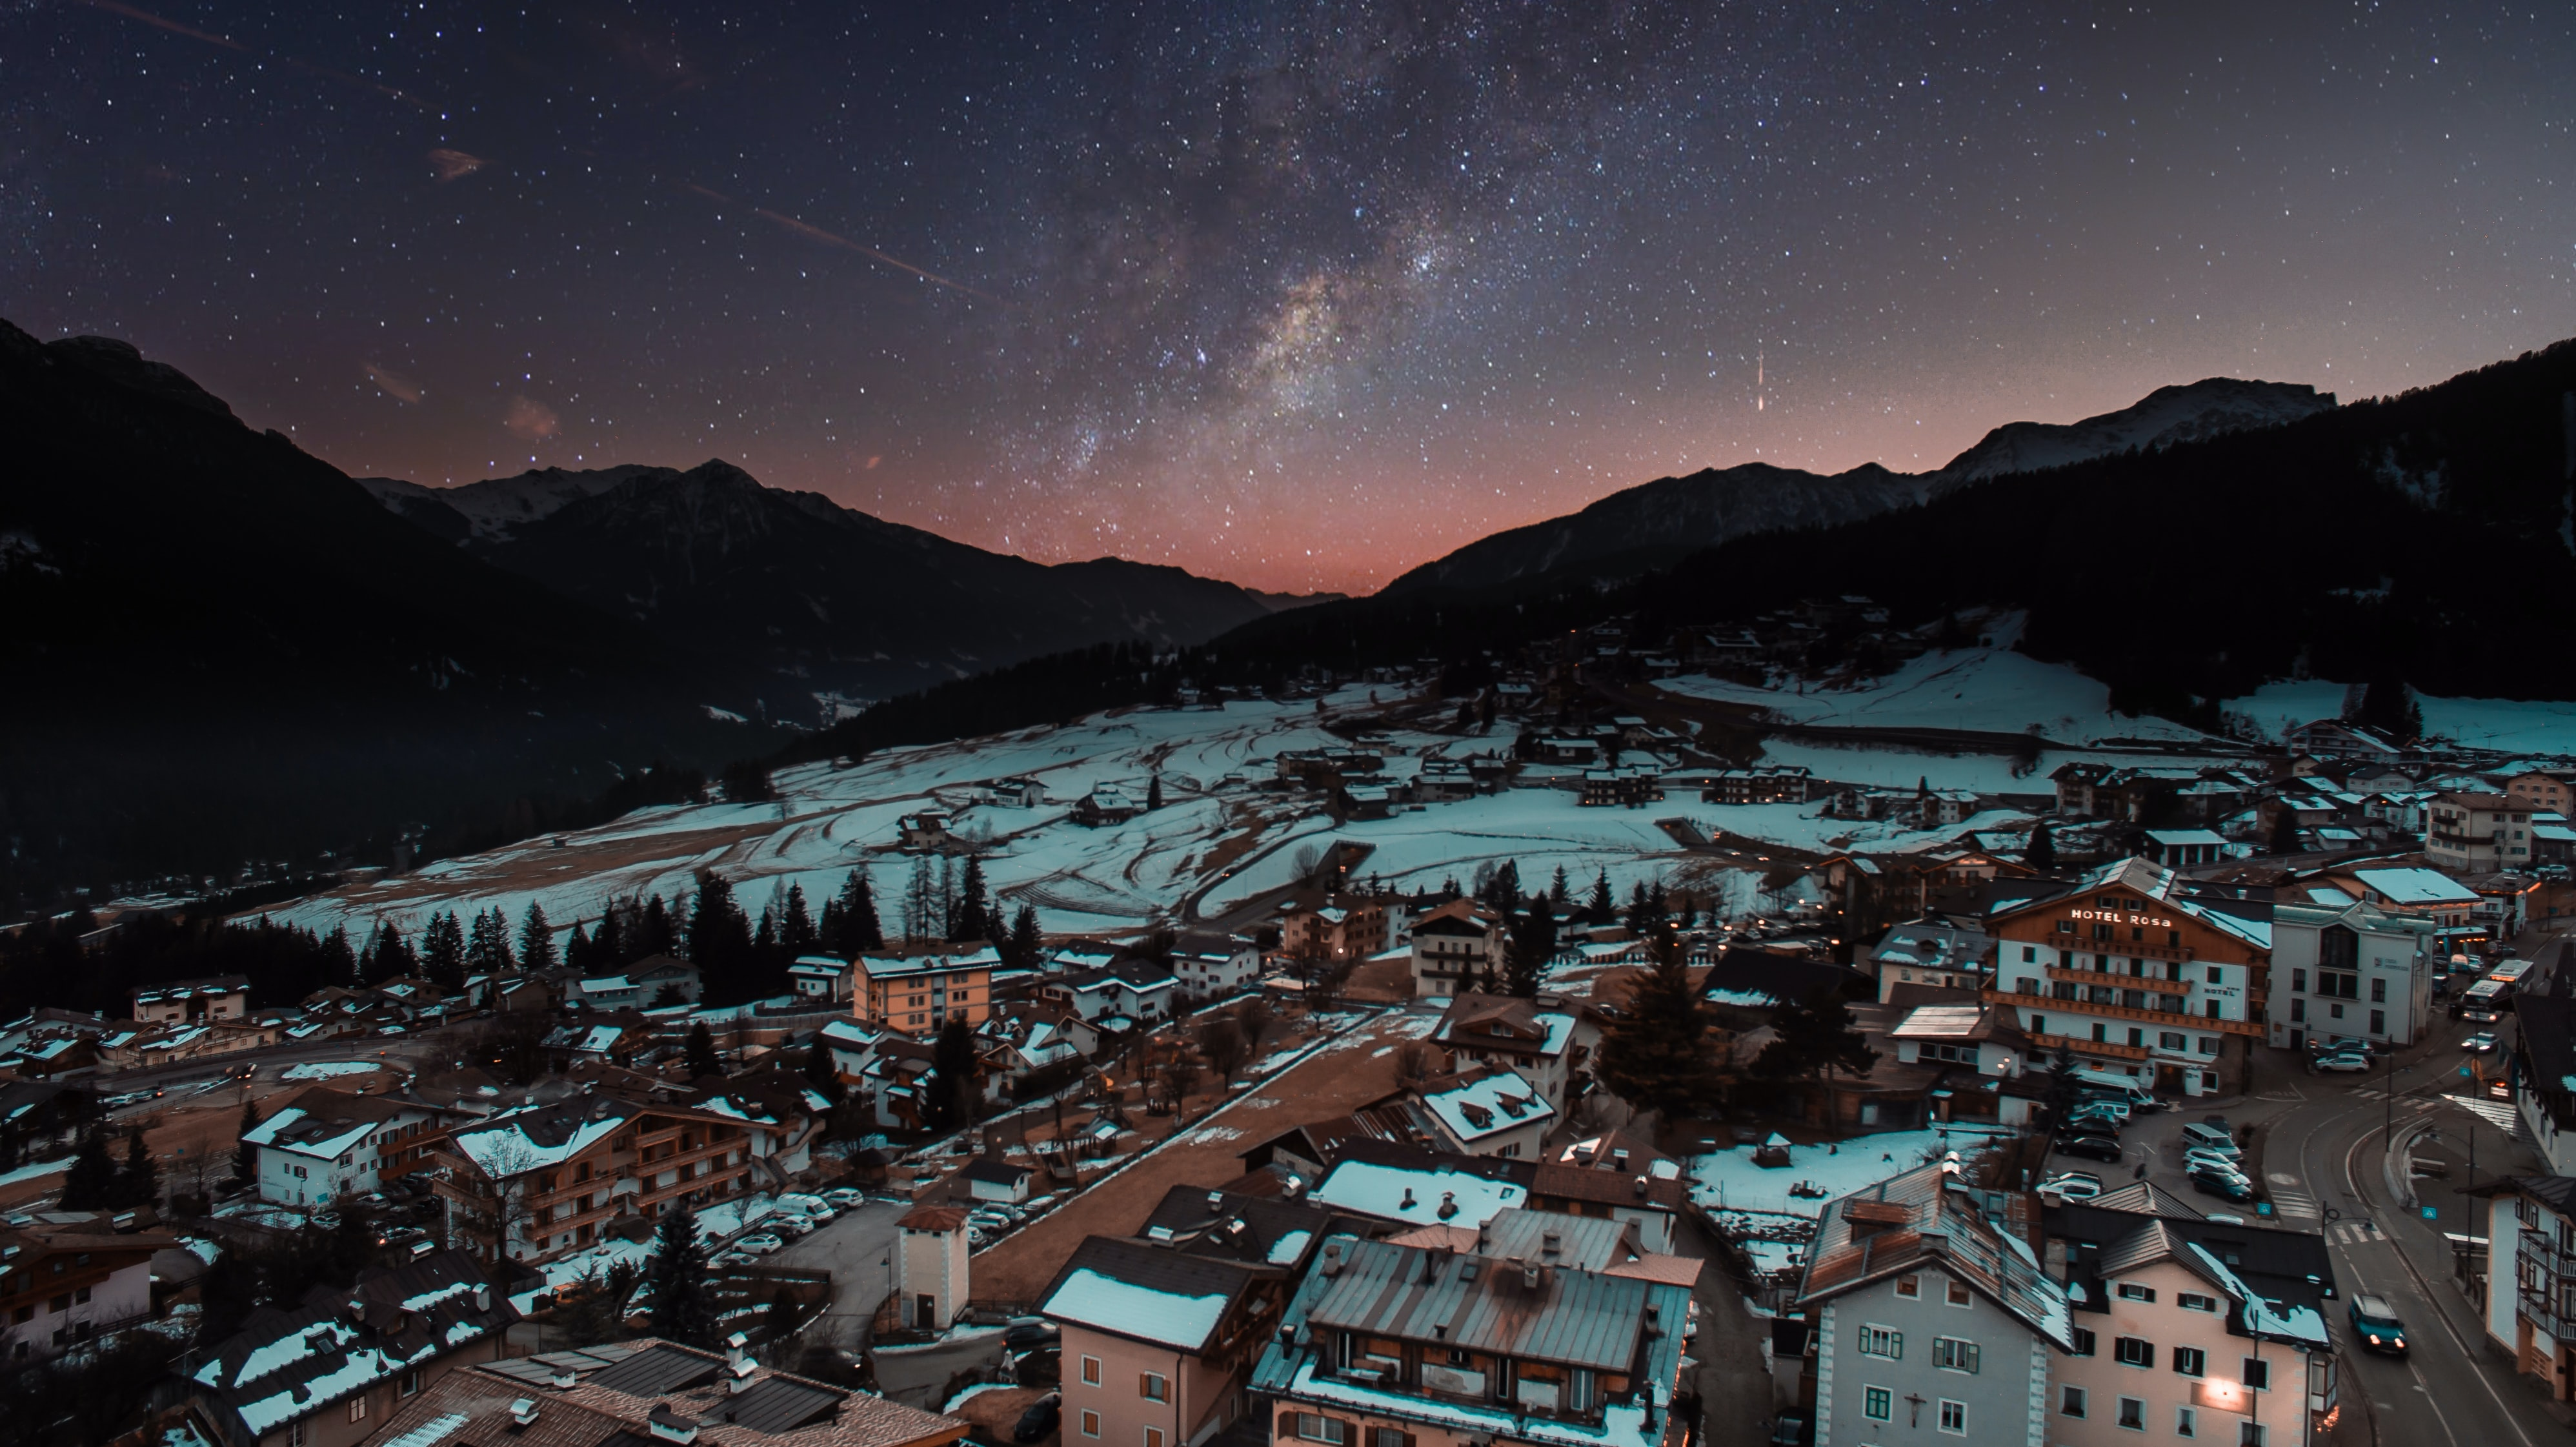 town under starry sky